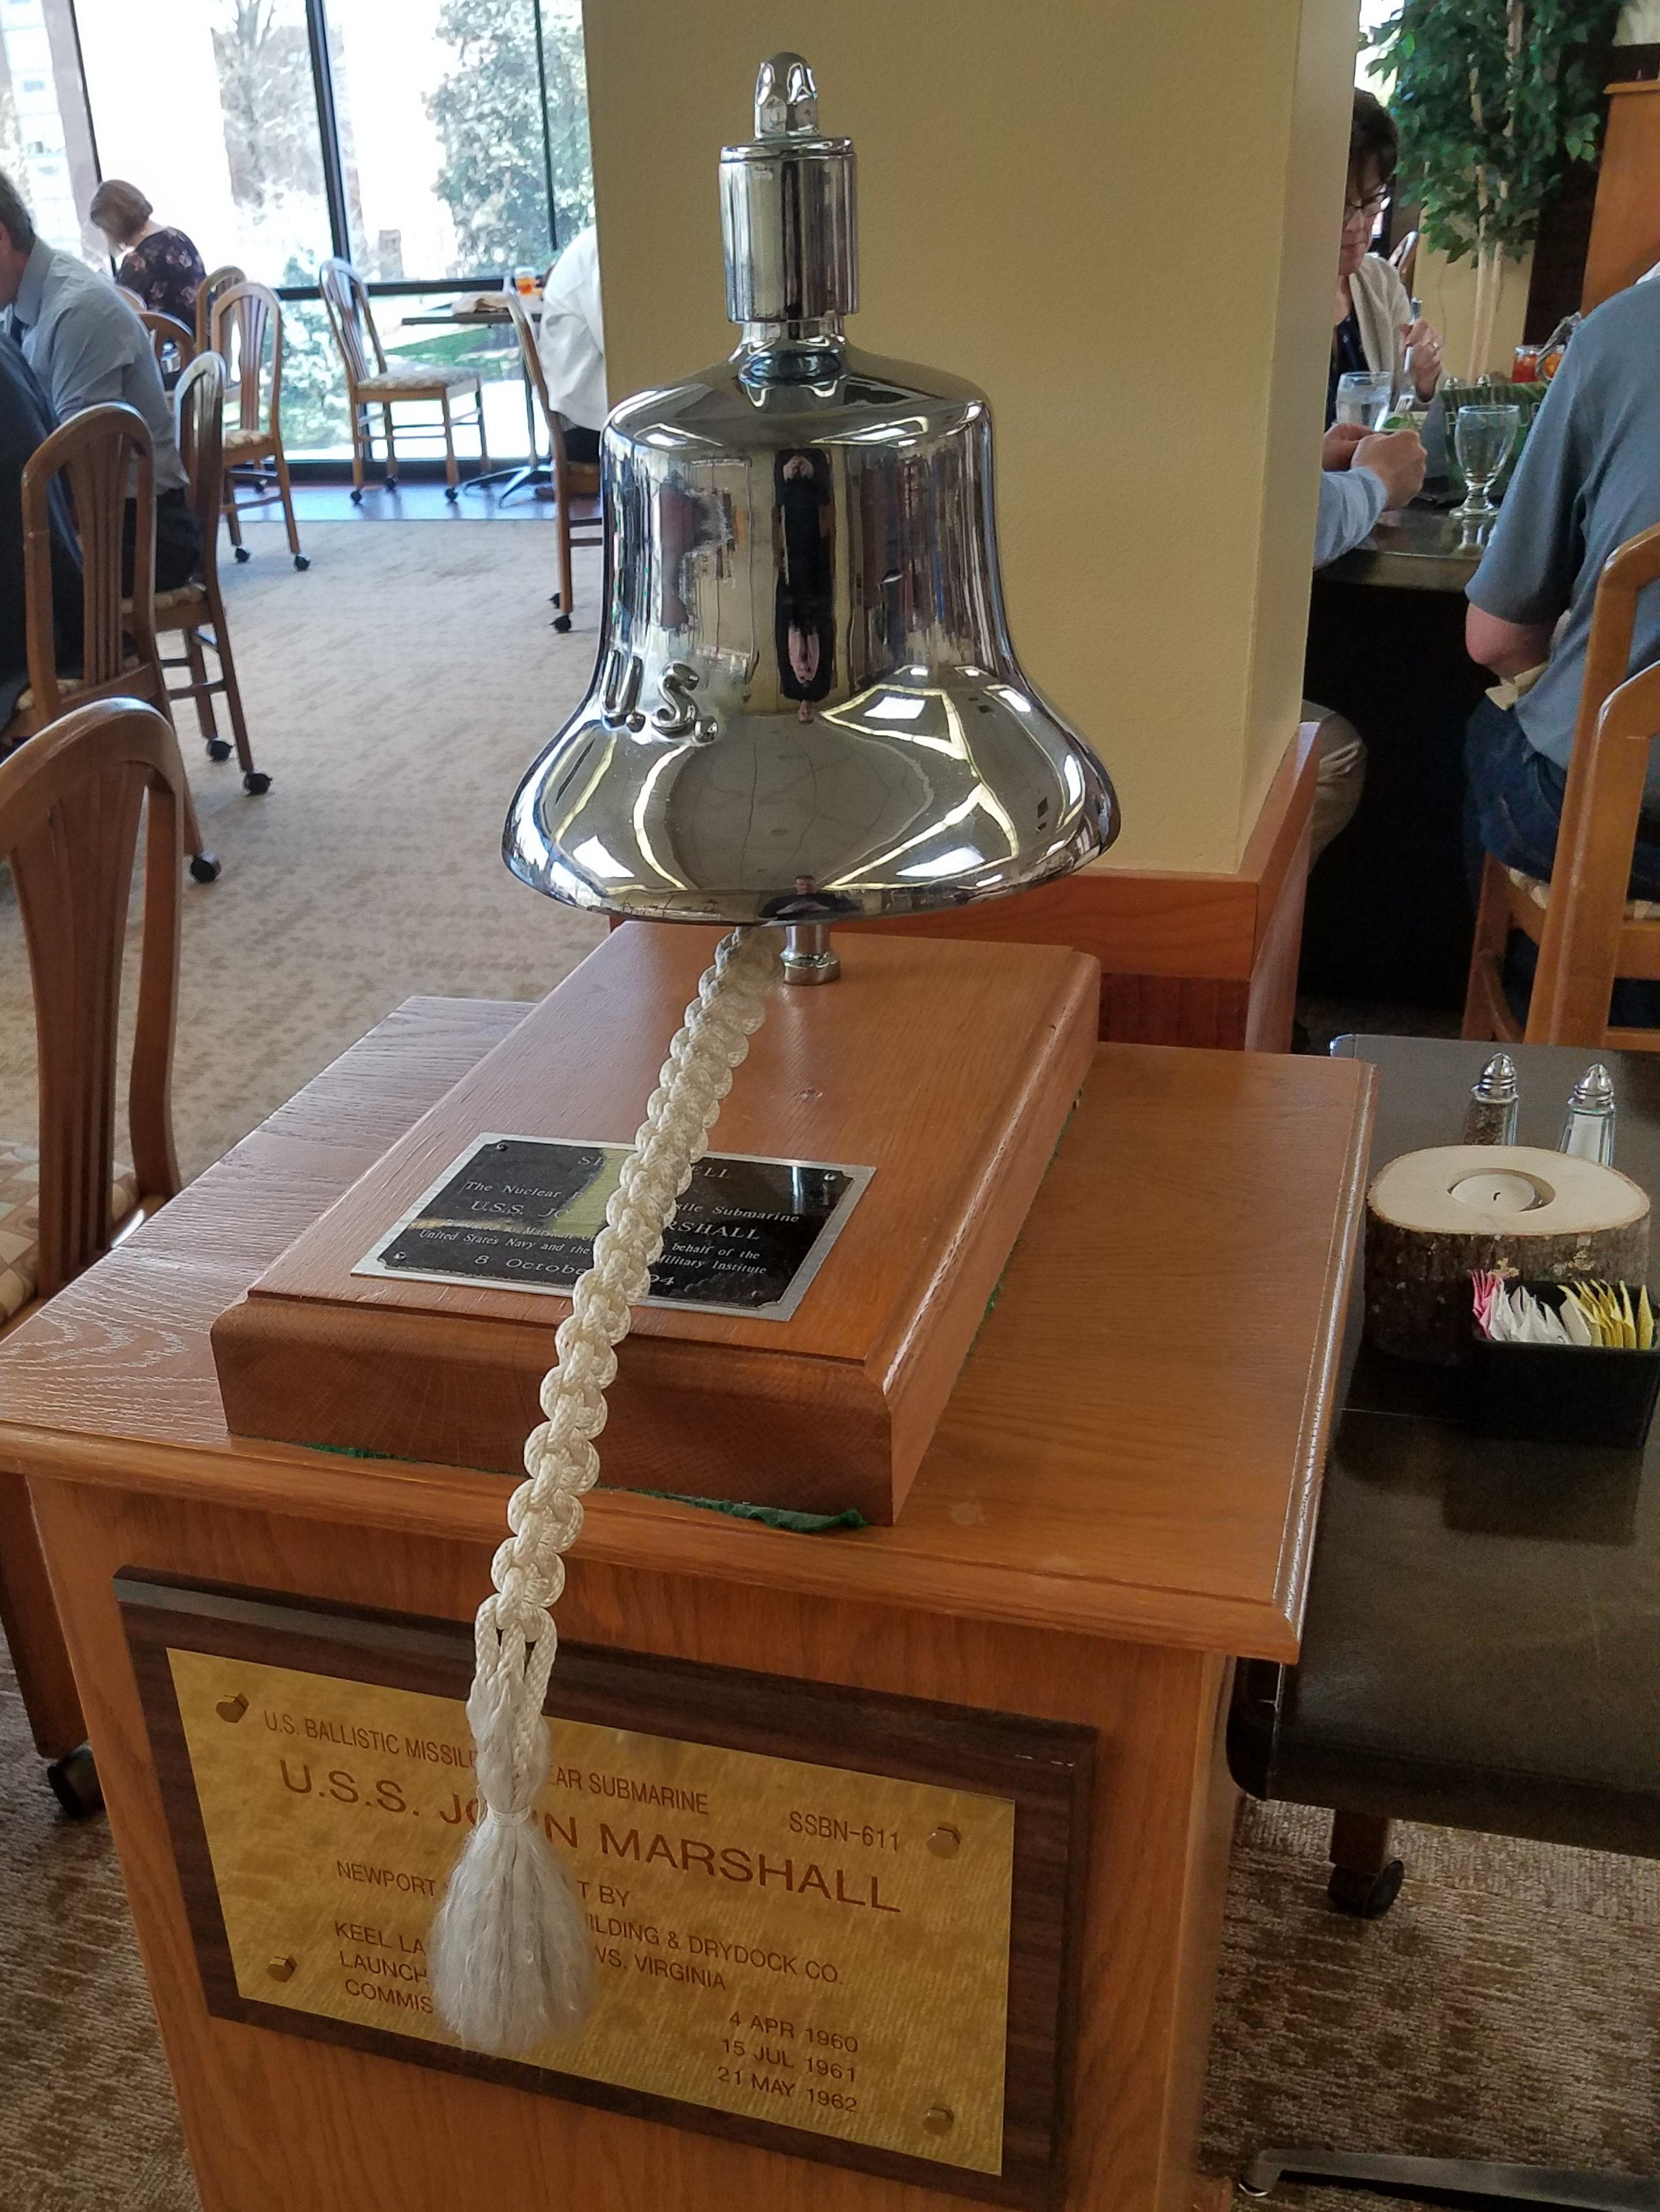 Since 1994, the building's John Marshall dining room has been home to this bell from the Nuclear Ballistic Missile Submarine U.S.S. John Marshall.